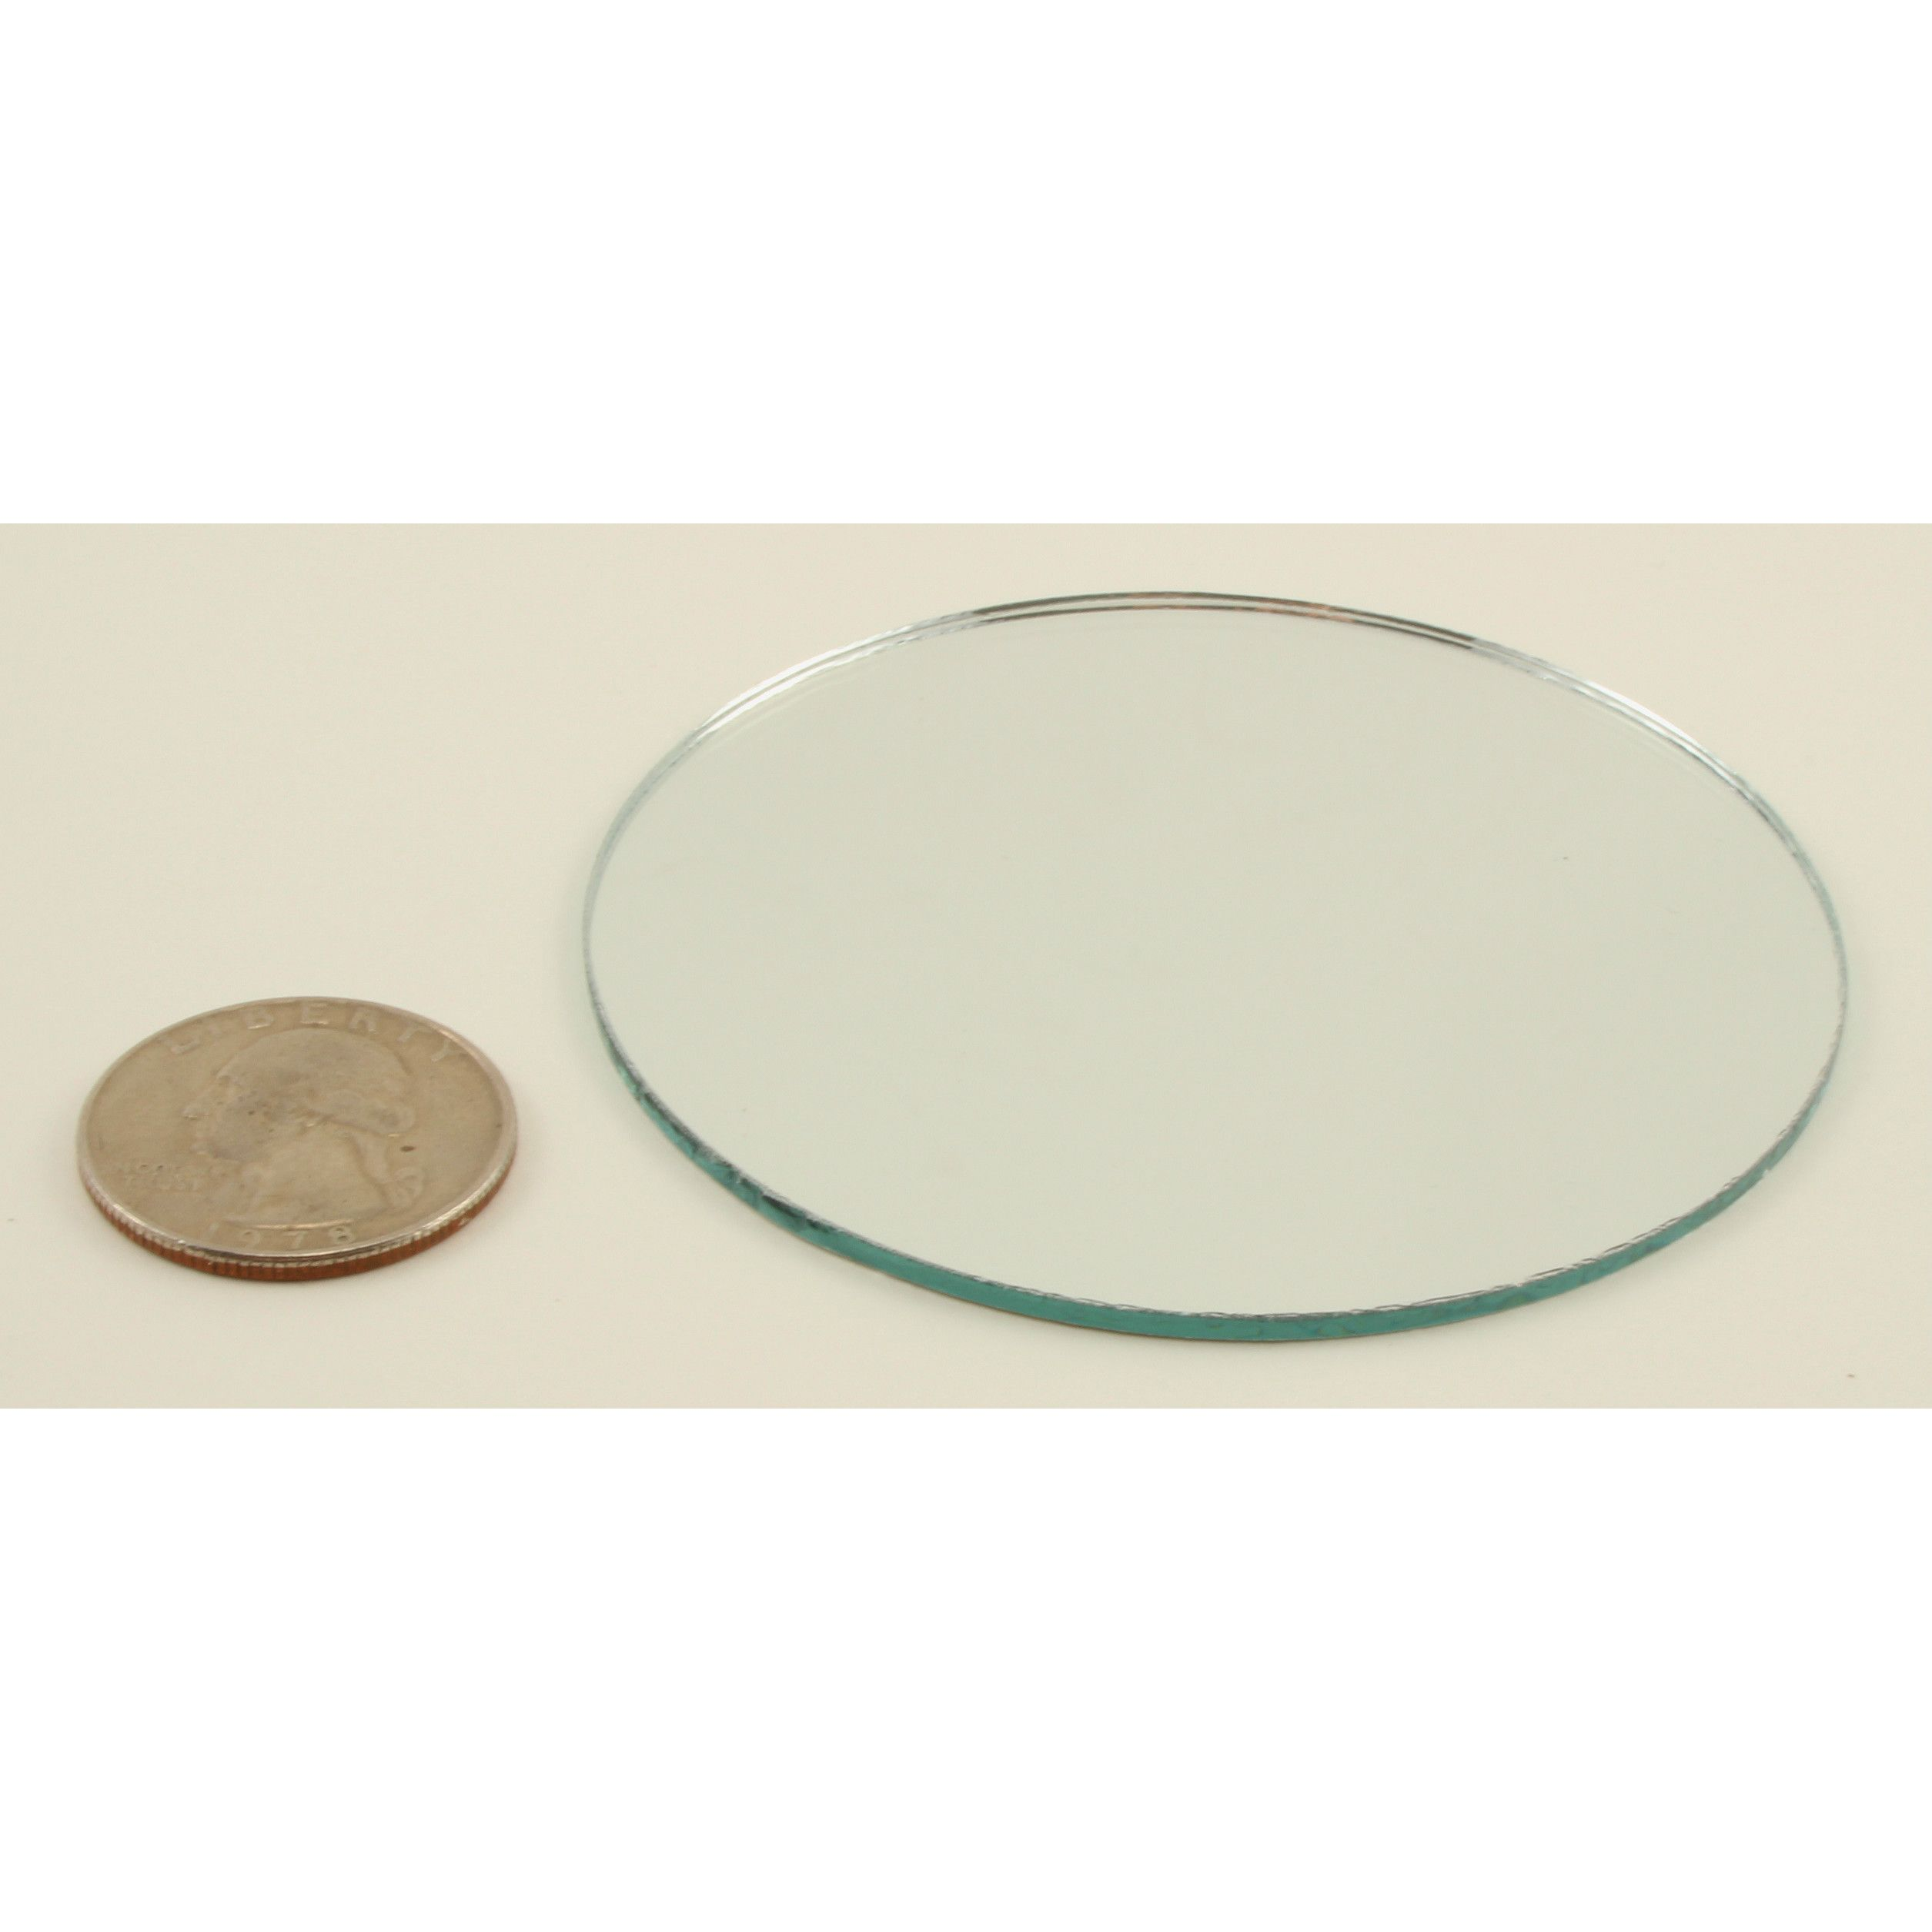 3 Inch Glass Small Round Mirrors Bulk 100 Pieces Mirror